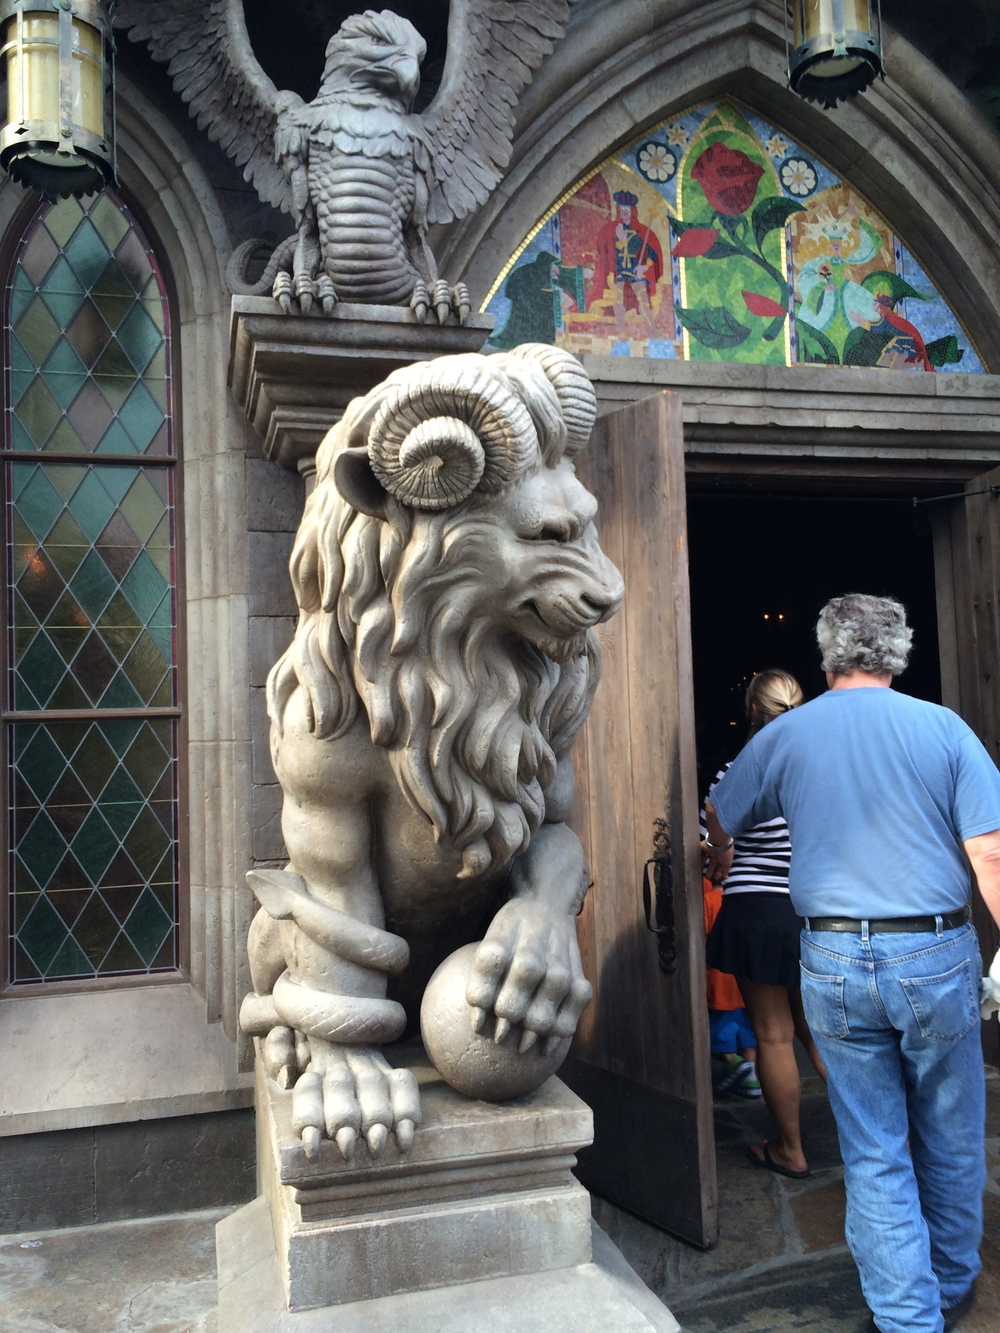 Stone Lion guarding the doors.